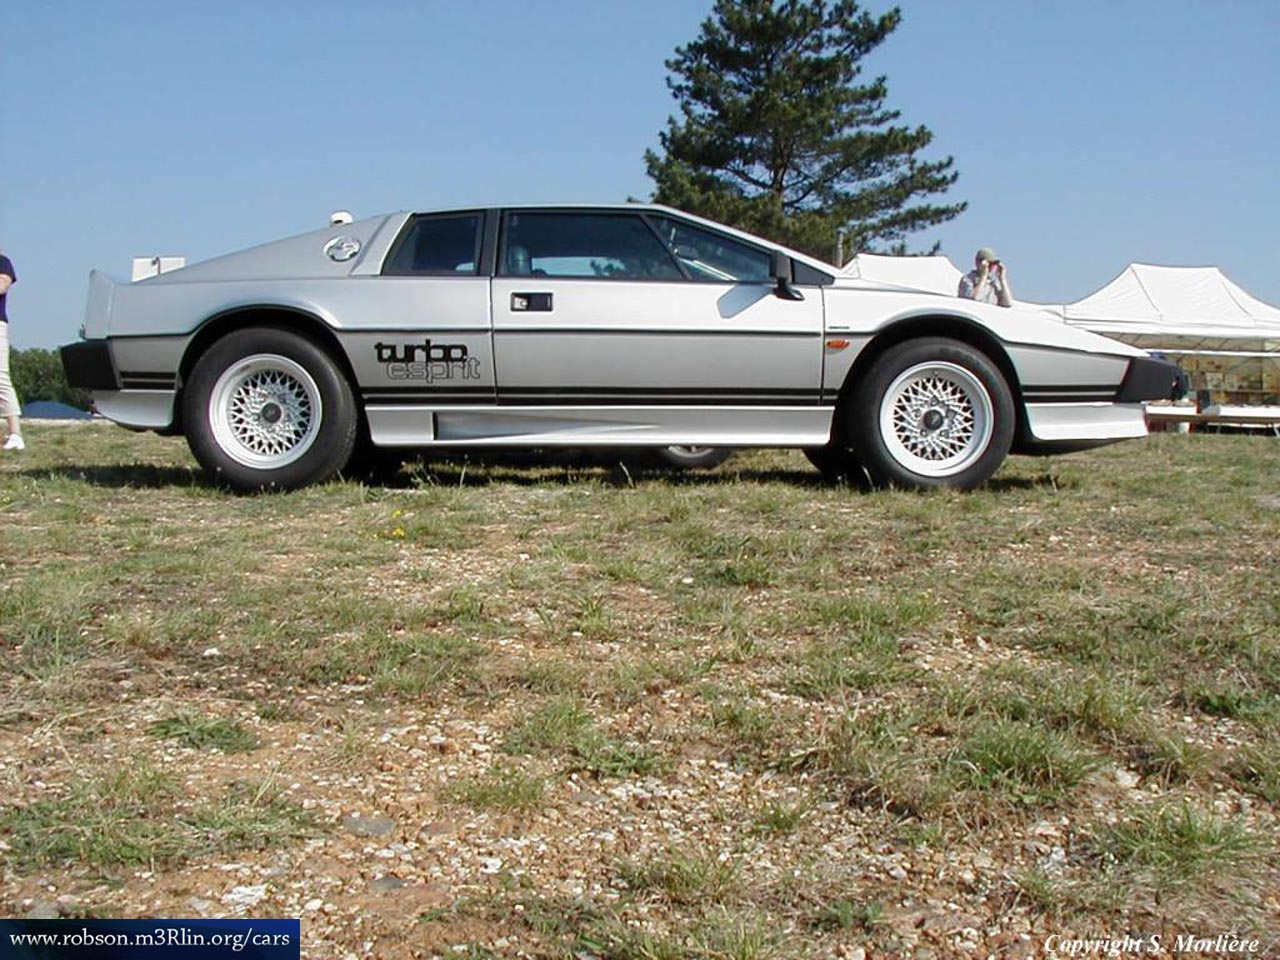 Lotus Esprit Turbo 1980 | Cars - Pictures & Wallpapers, Automotive ...